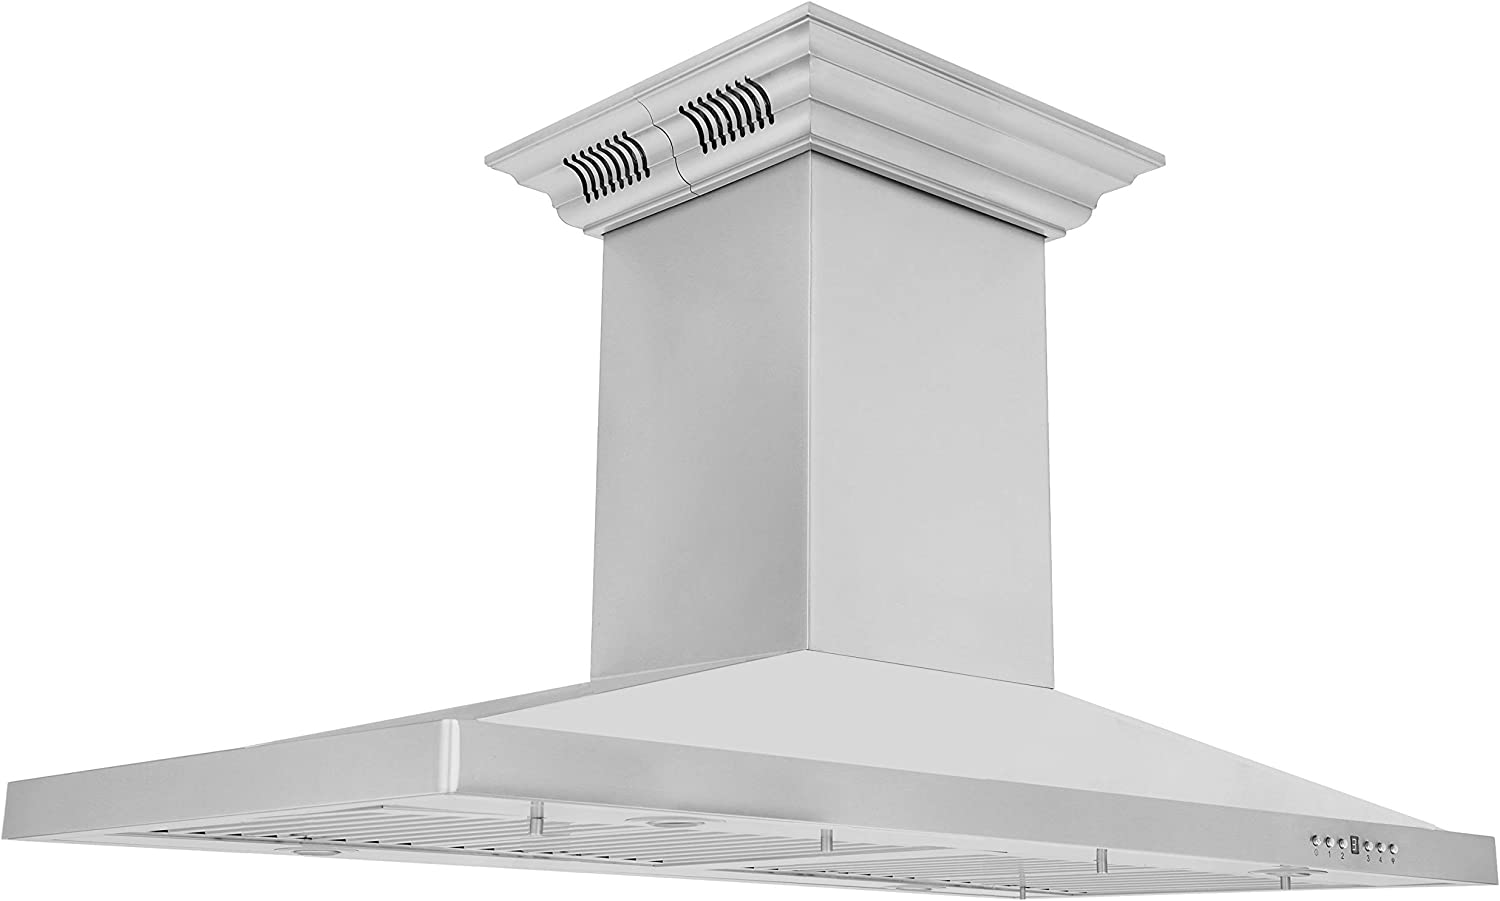 ZLINE 48 in. Island Mount Range with in Bui Super popular specialty store shop Stainless Steel Hood